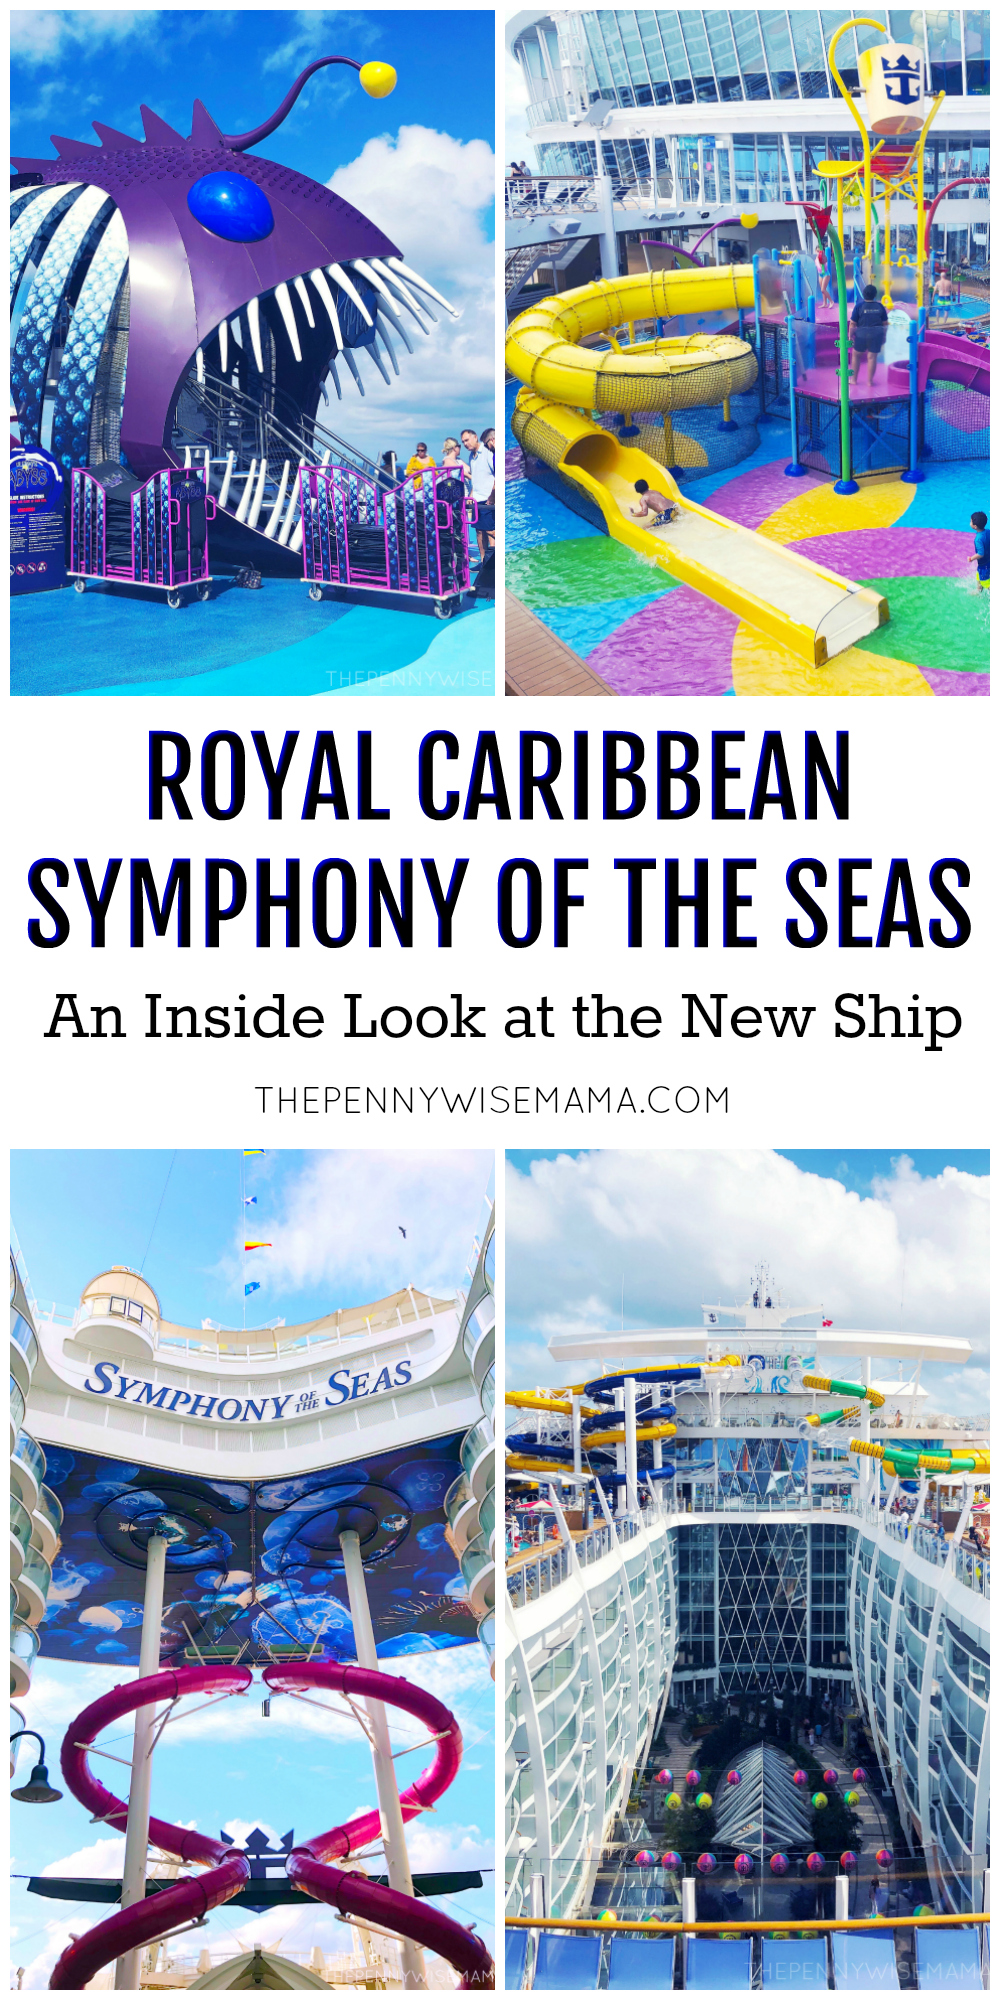 Take an inside look at Royal Caribbean's newest ship, Symphony of the Seas! Read our thoughts & view photos of the food, activities, entertainment, cabins, and more.